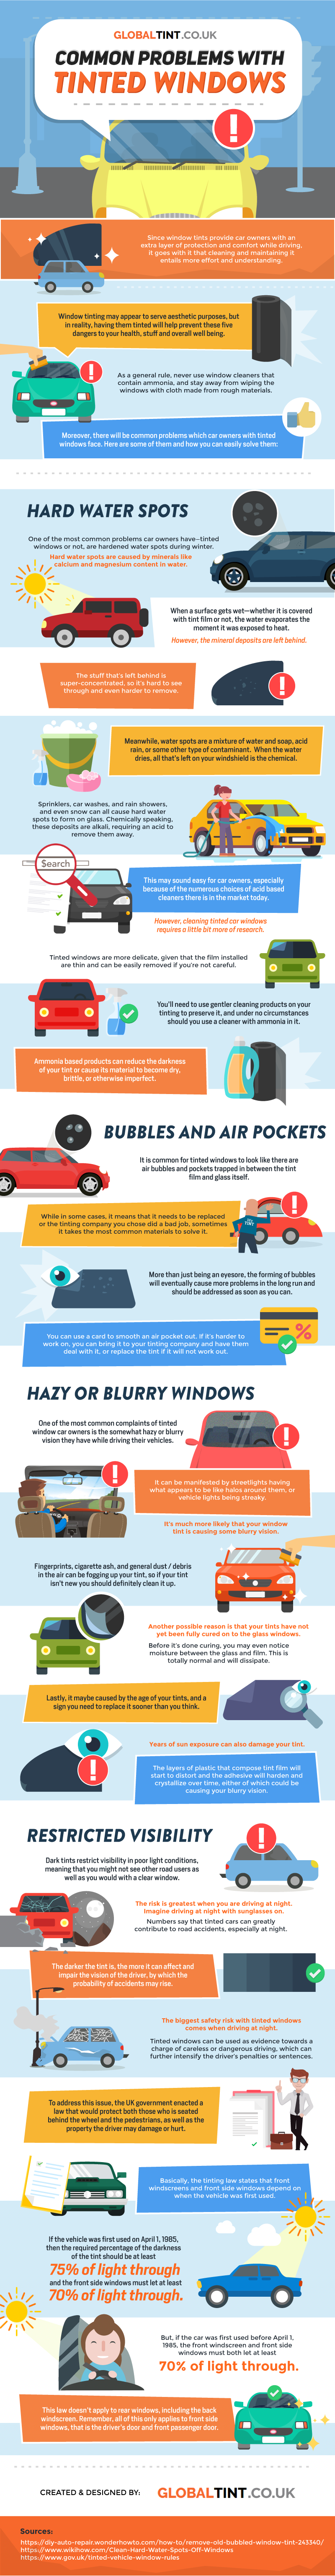 Common problems on tinted windows